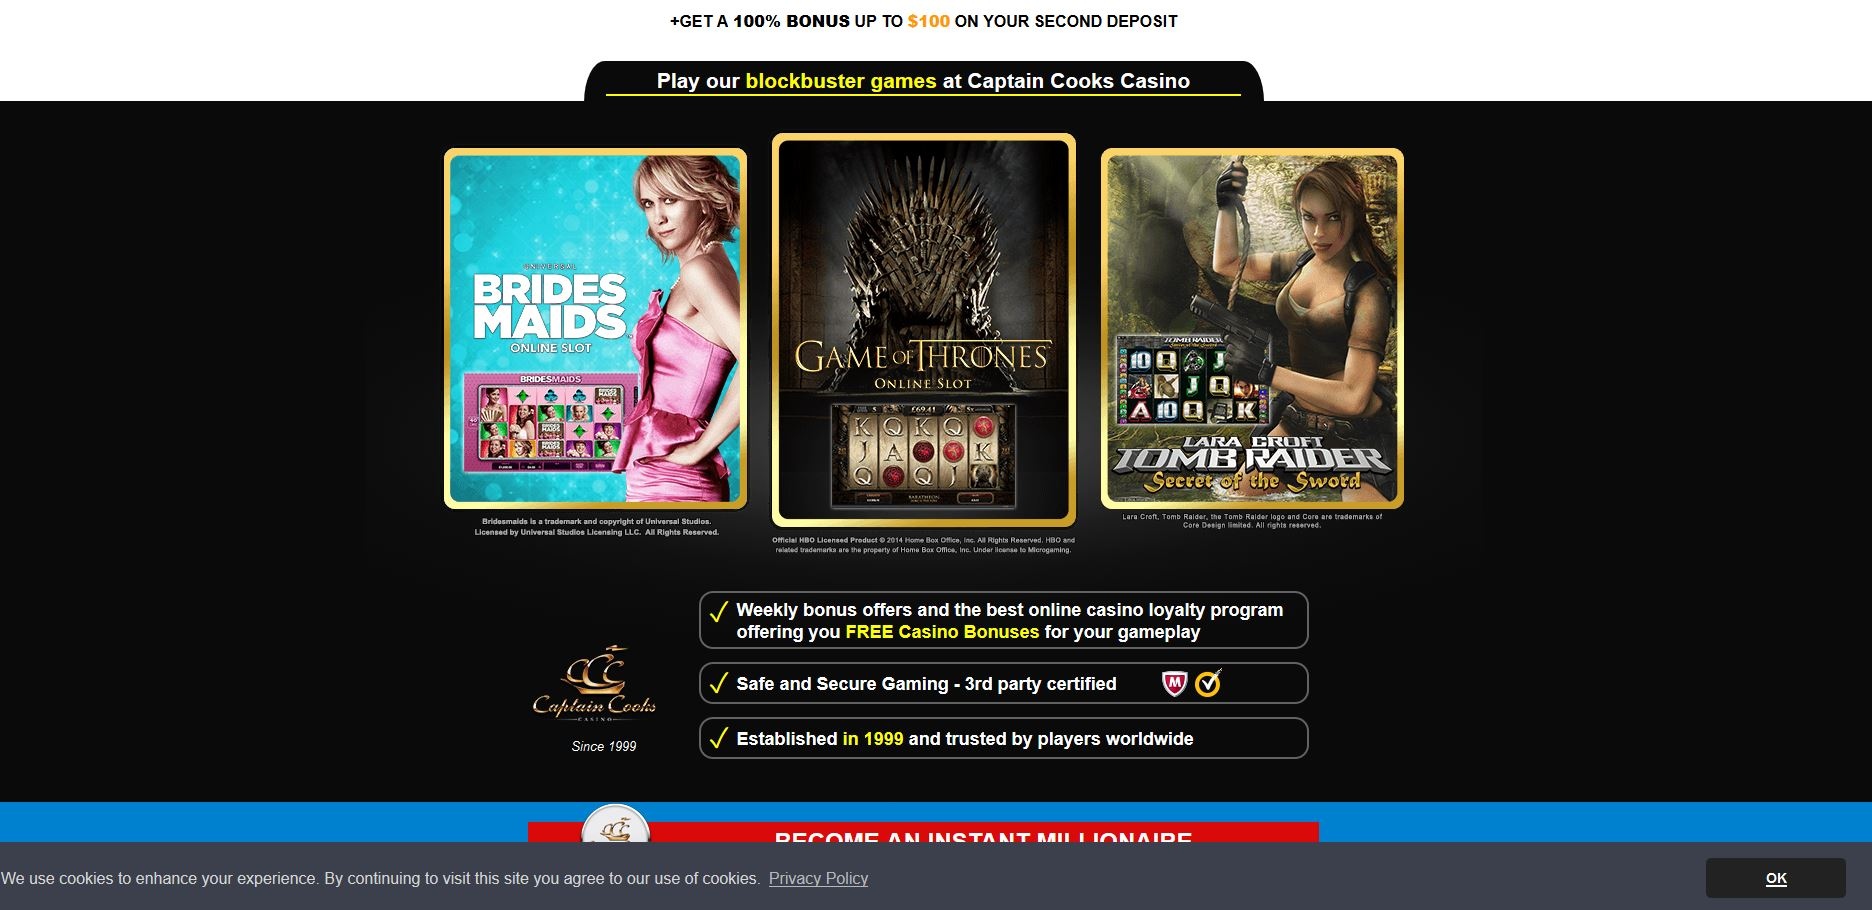 Captain cooks casino payout video poker